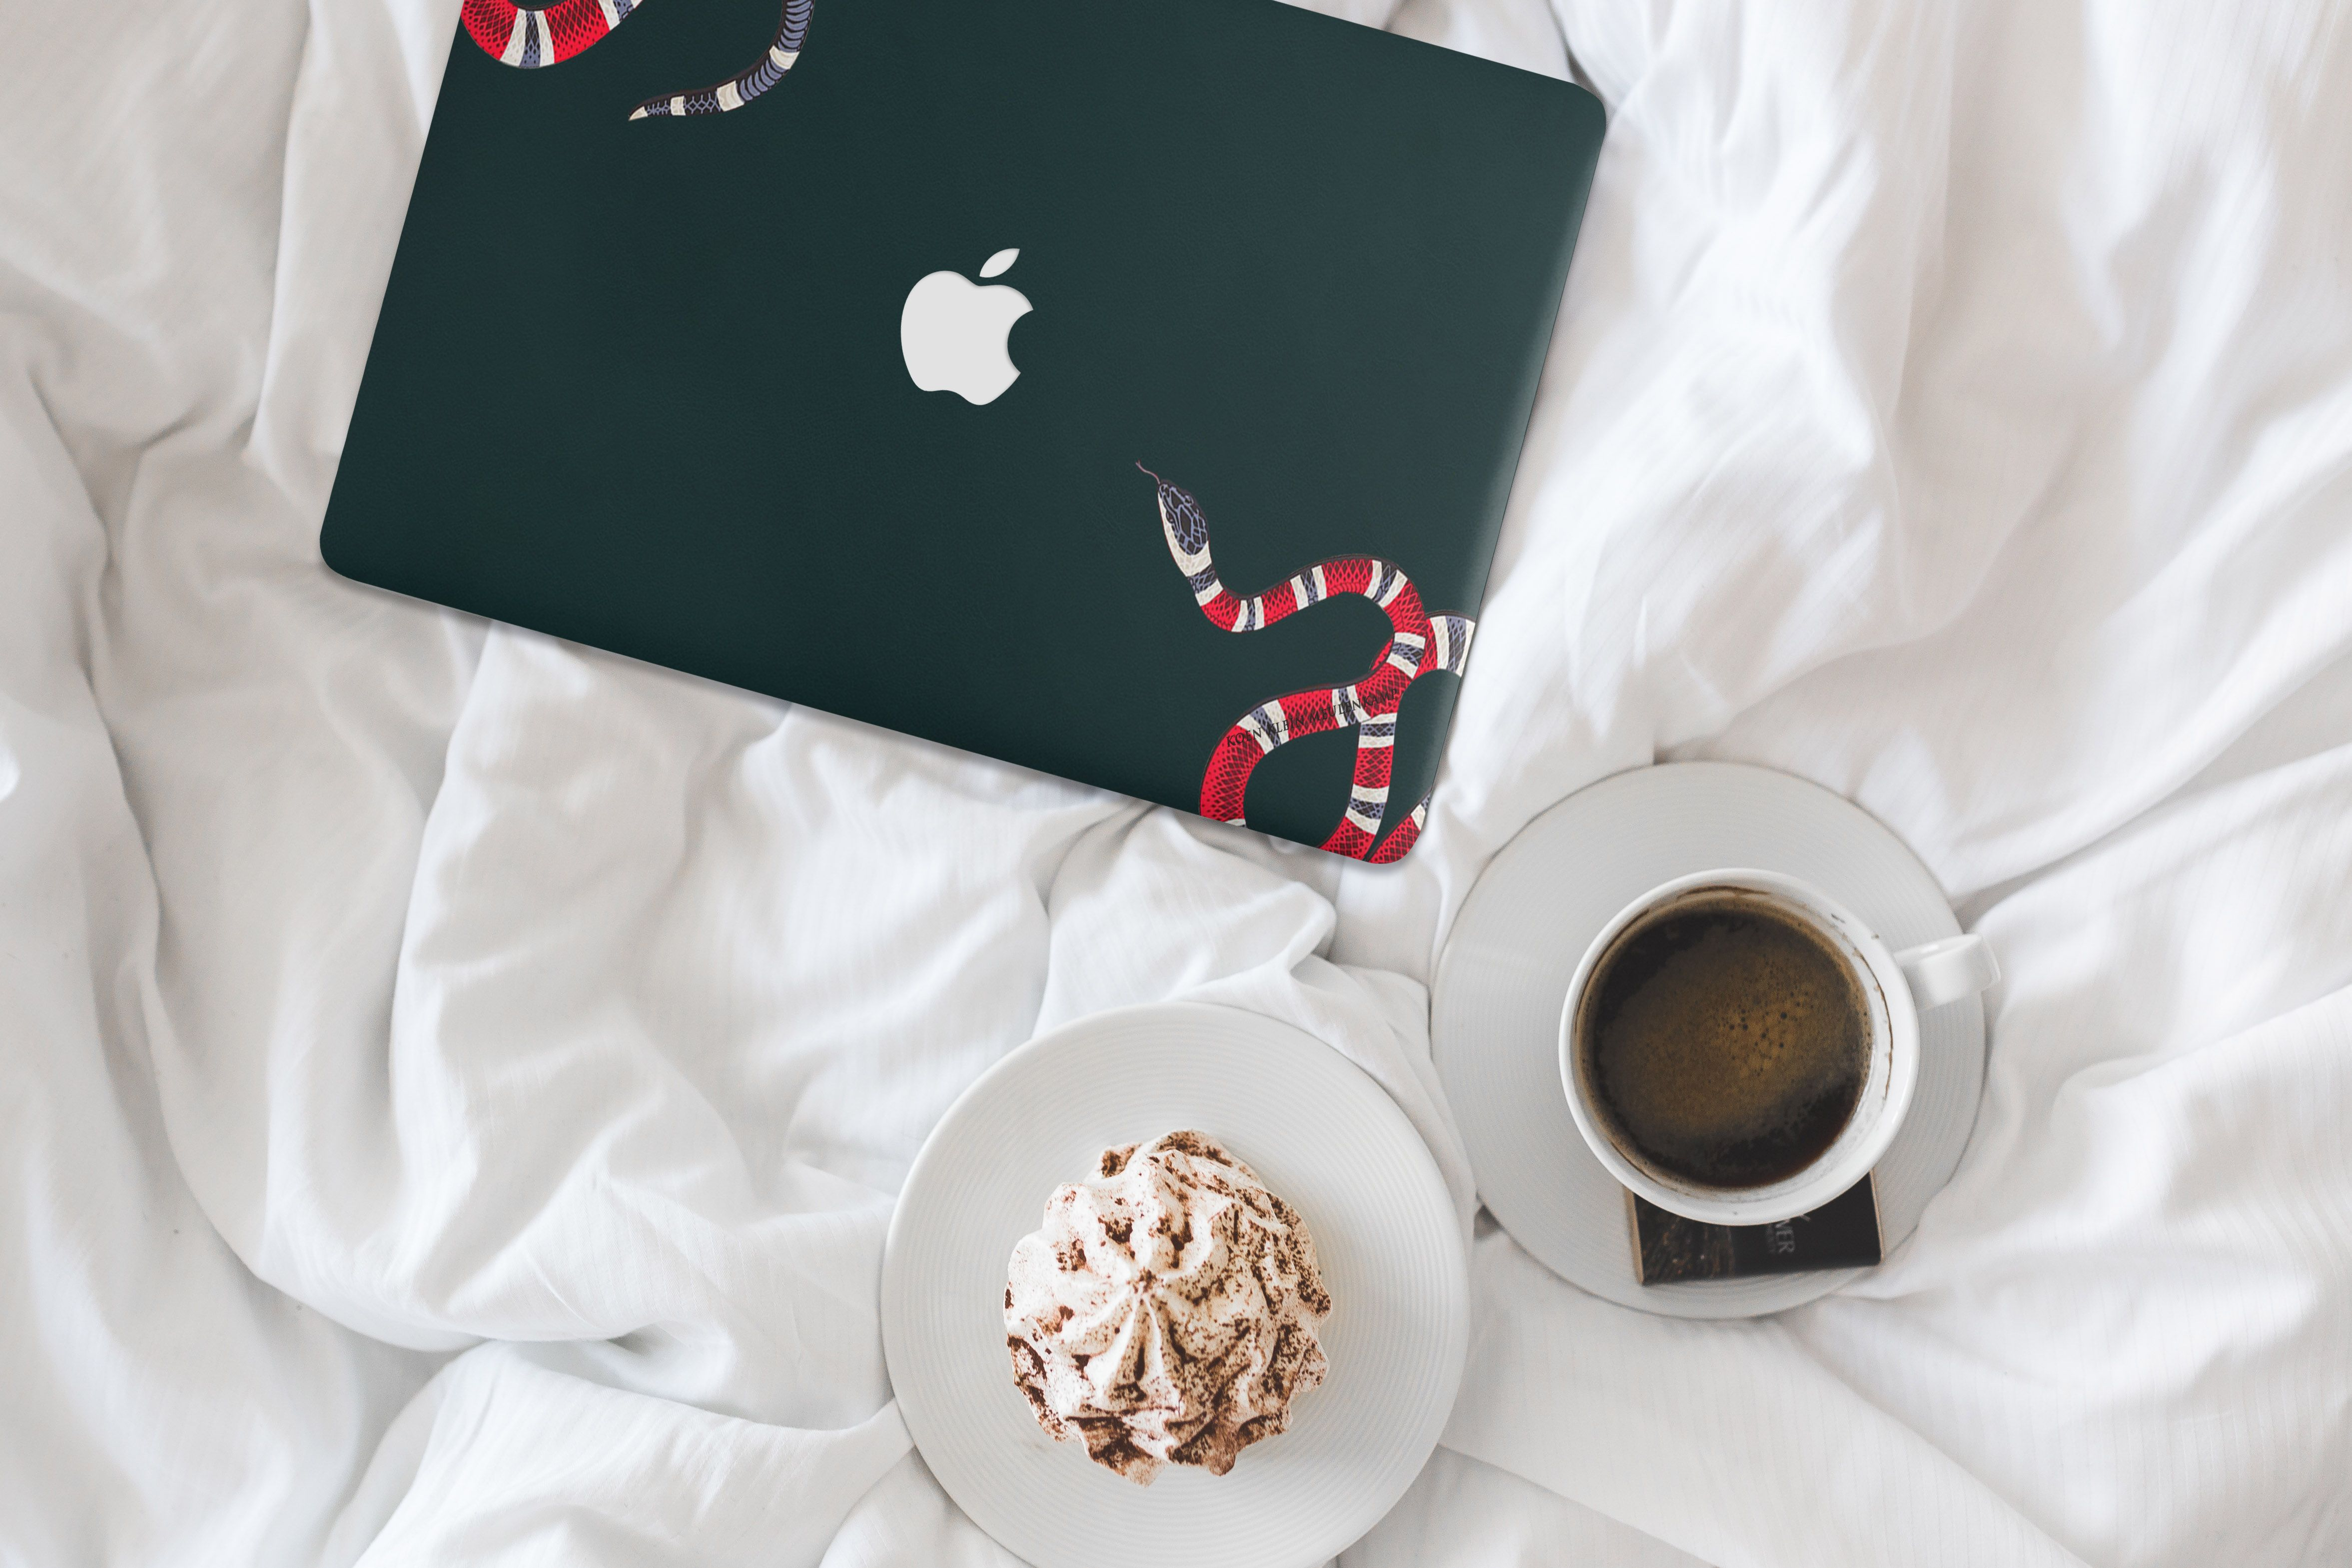 a239be7208a Gucci Snake Macbook Decal Laptop Gucci Skin Macbook Air 13 Skin Macbook Pro  13 Skin Gucci